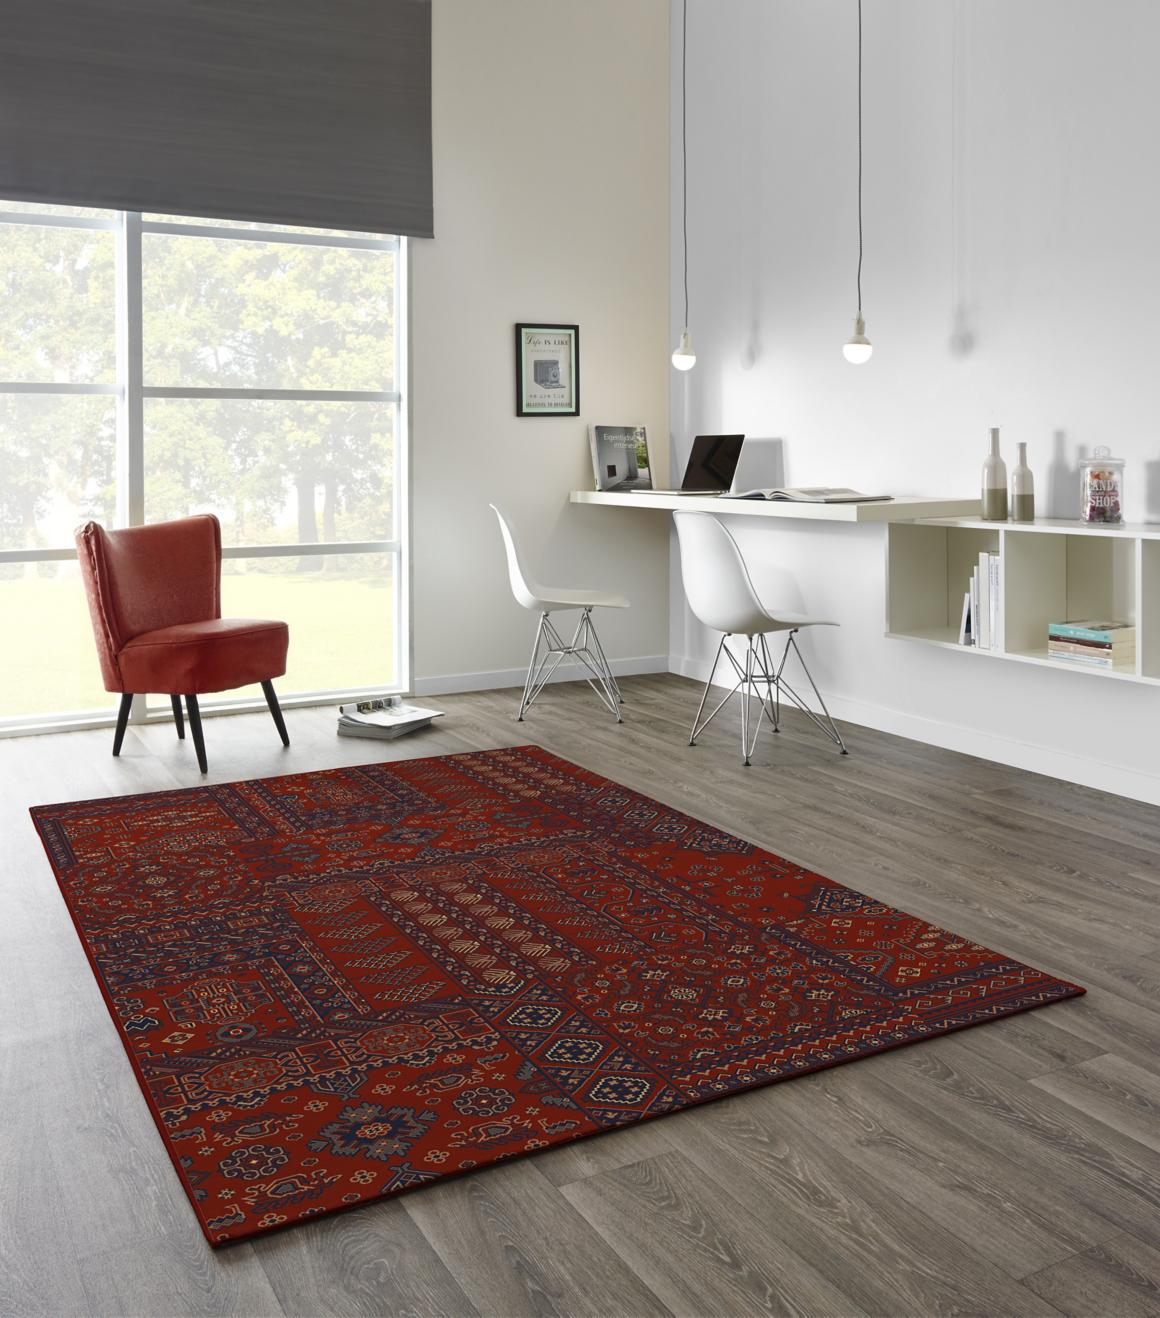 Alfombra Kirman 160x230 cm burdeo ROOM